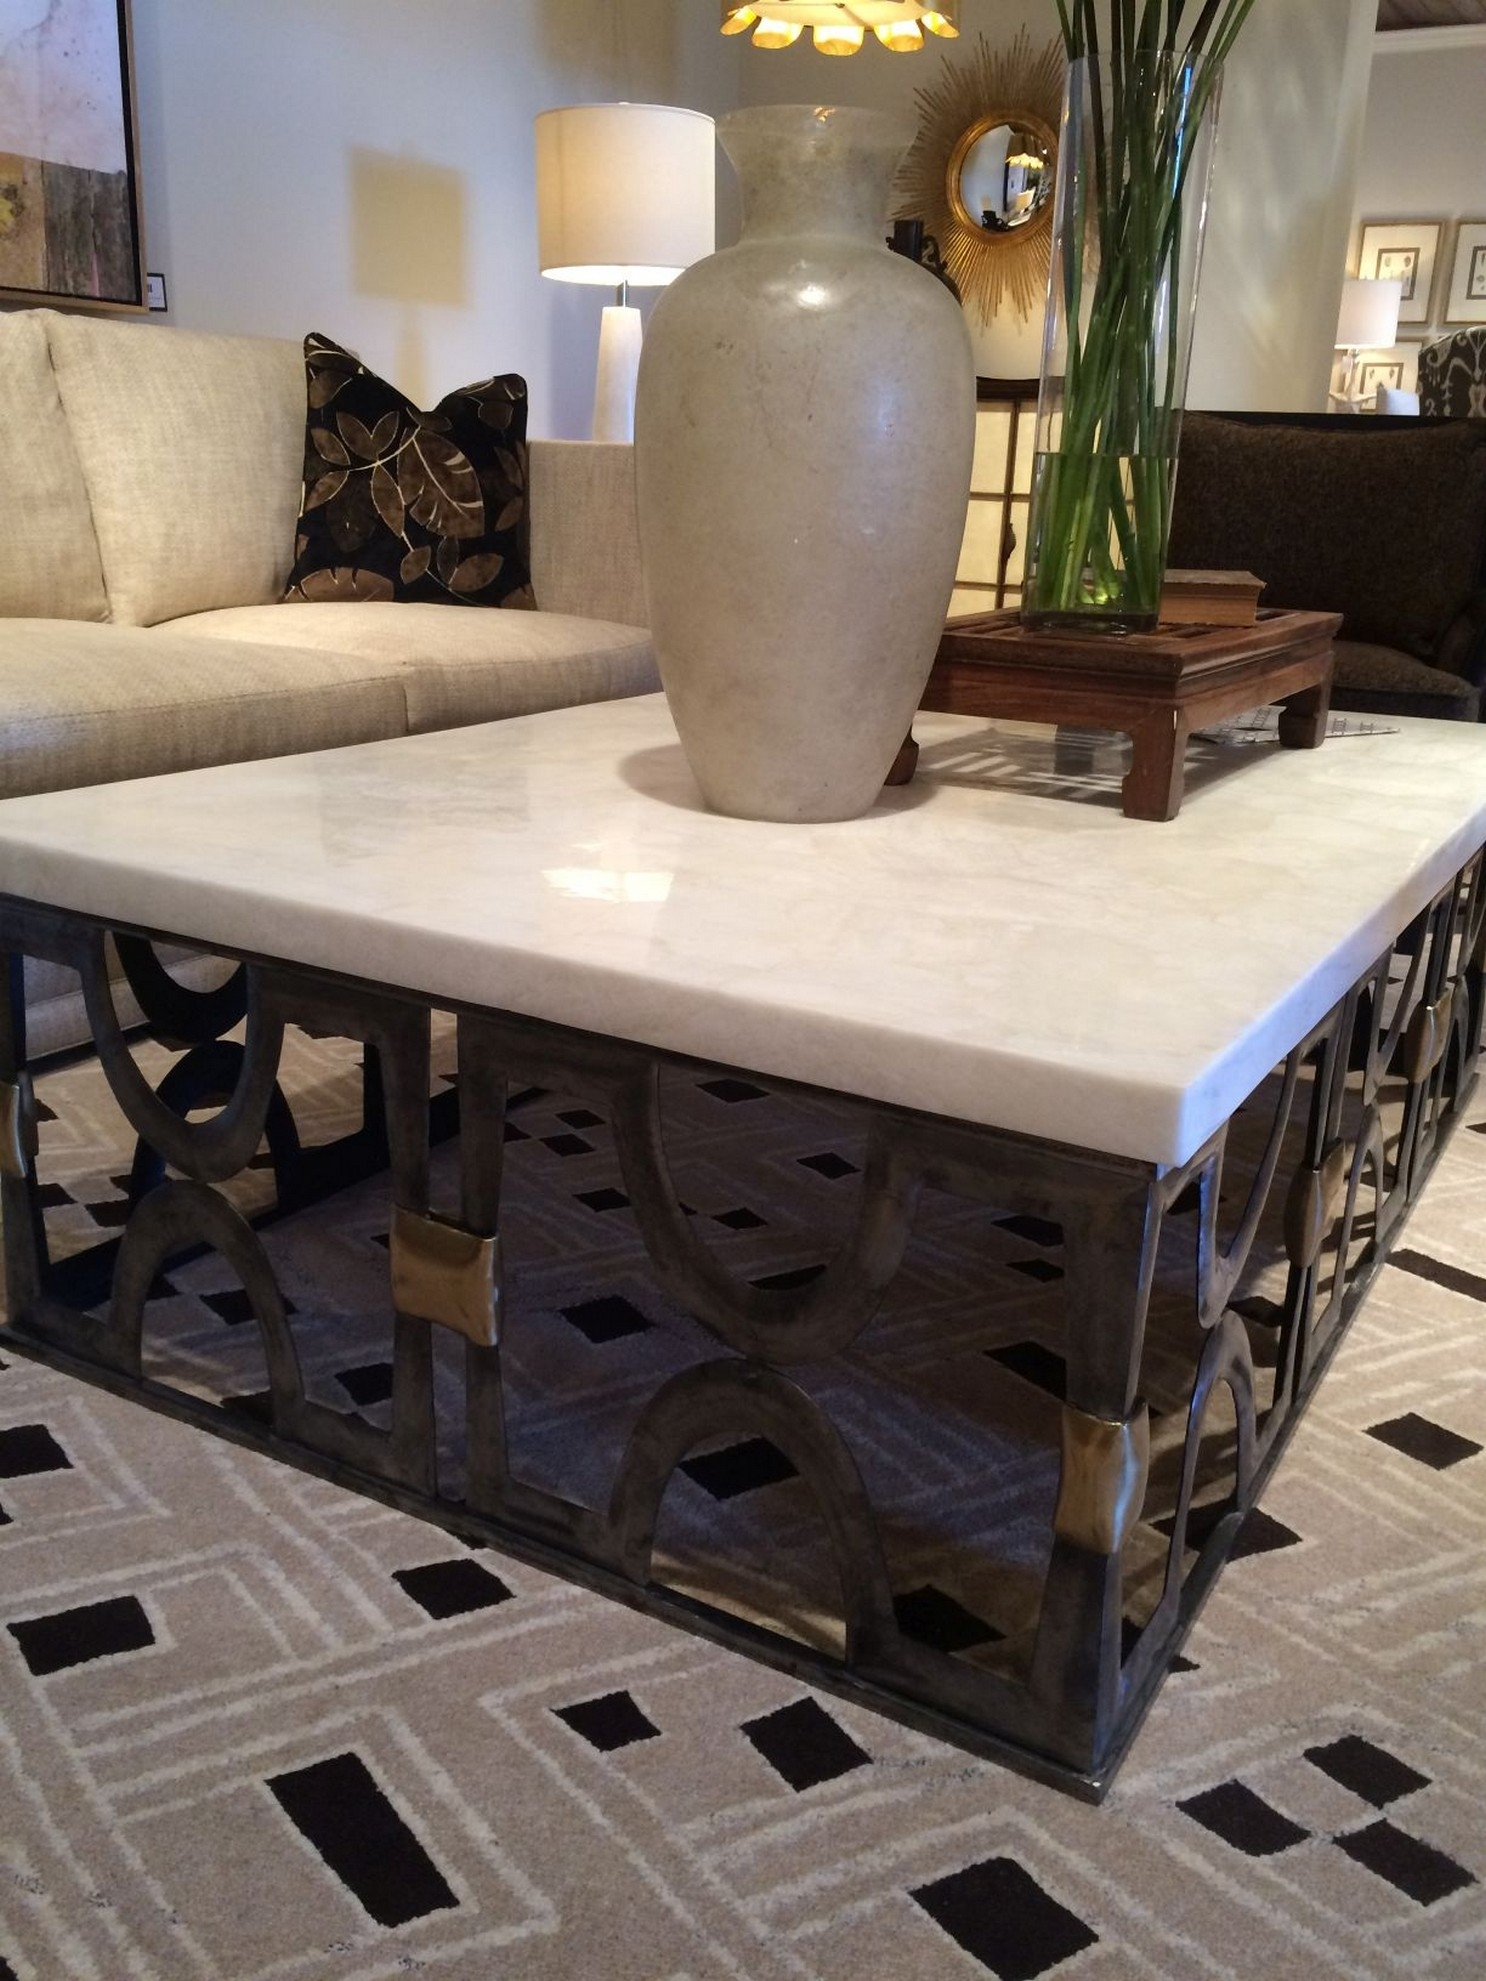 Stone coffee table set & Stone Top Coffee Table - Foter